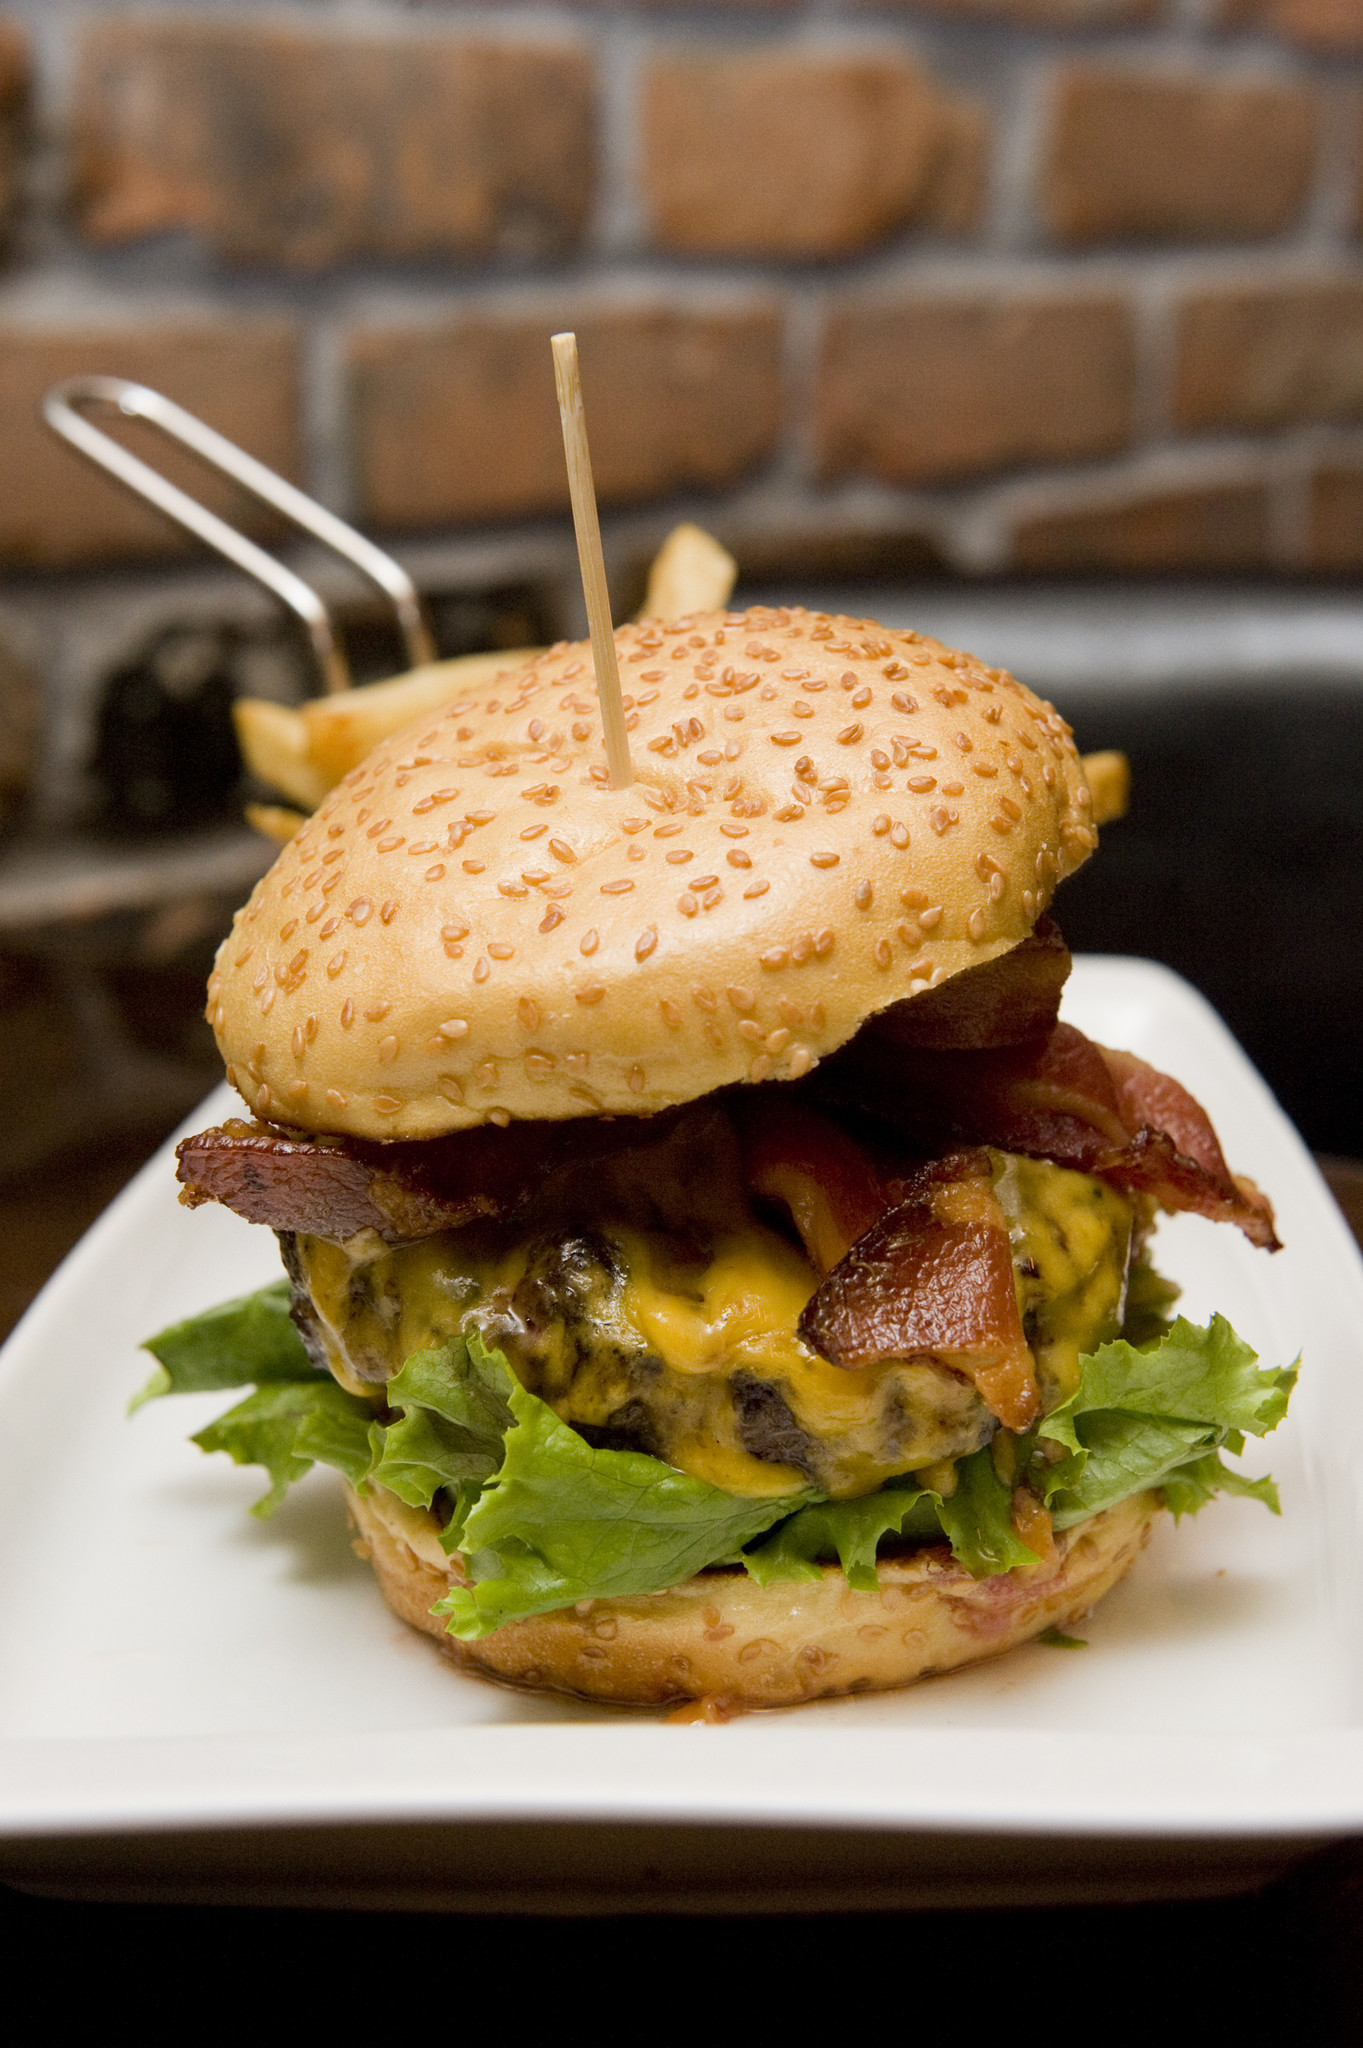 The Rok Brgr is one of the specialties at ROK:BRGR Burger Bar   Gastropub in Fort Lauderdale. The burger bar, which specializes in  specialty burgers, is planning to take its gourmet burger concept into Miami and Delray Beach in 2012. Photo by